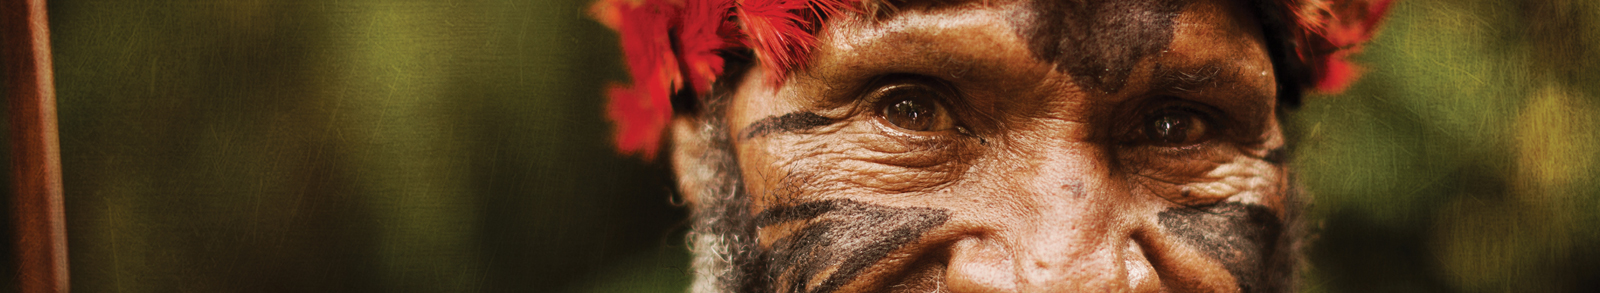 face of PNG man